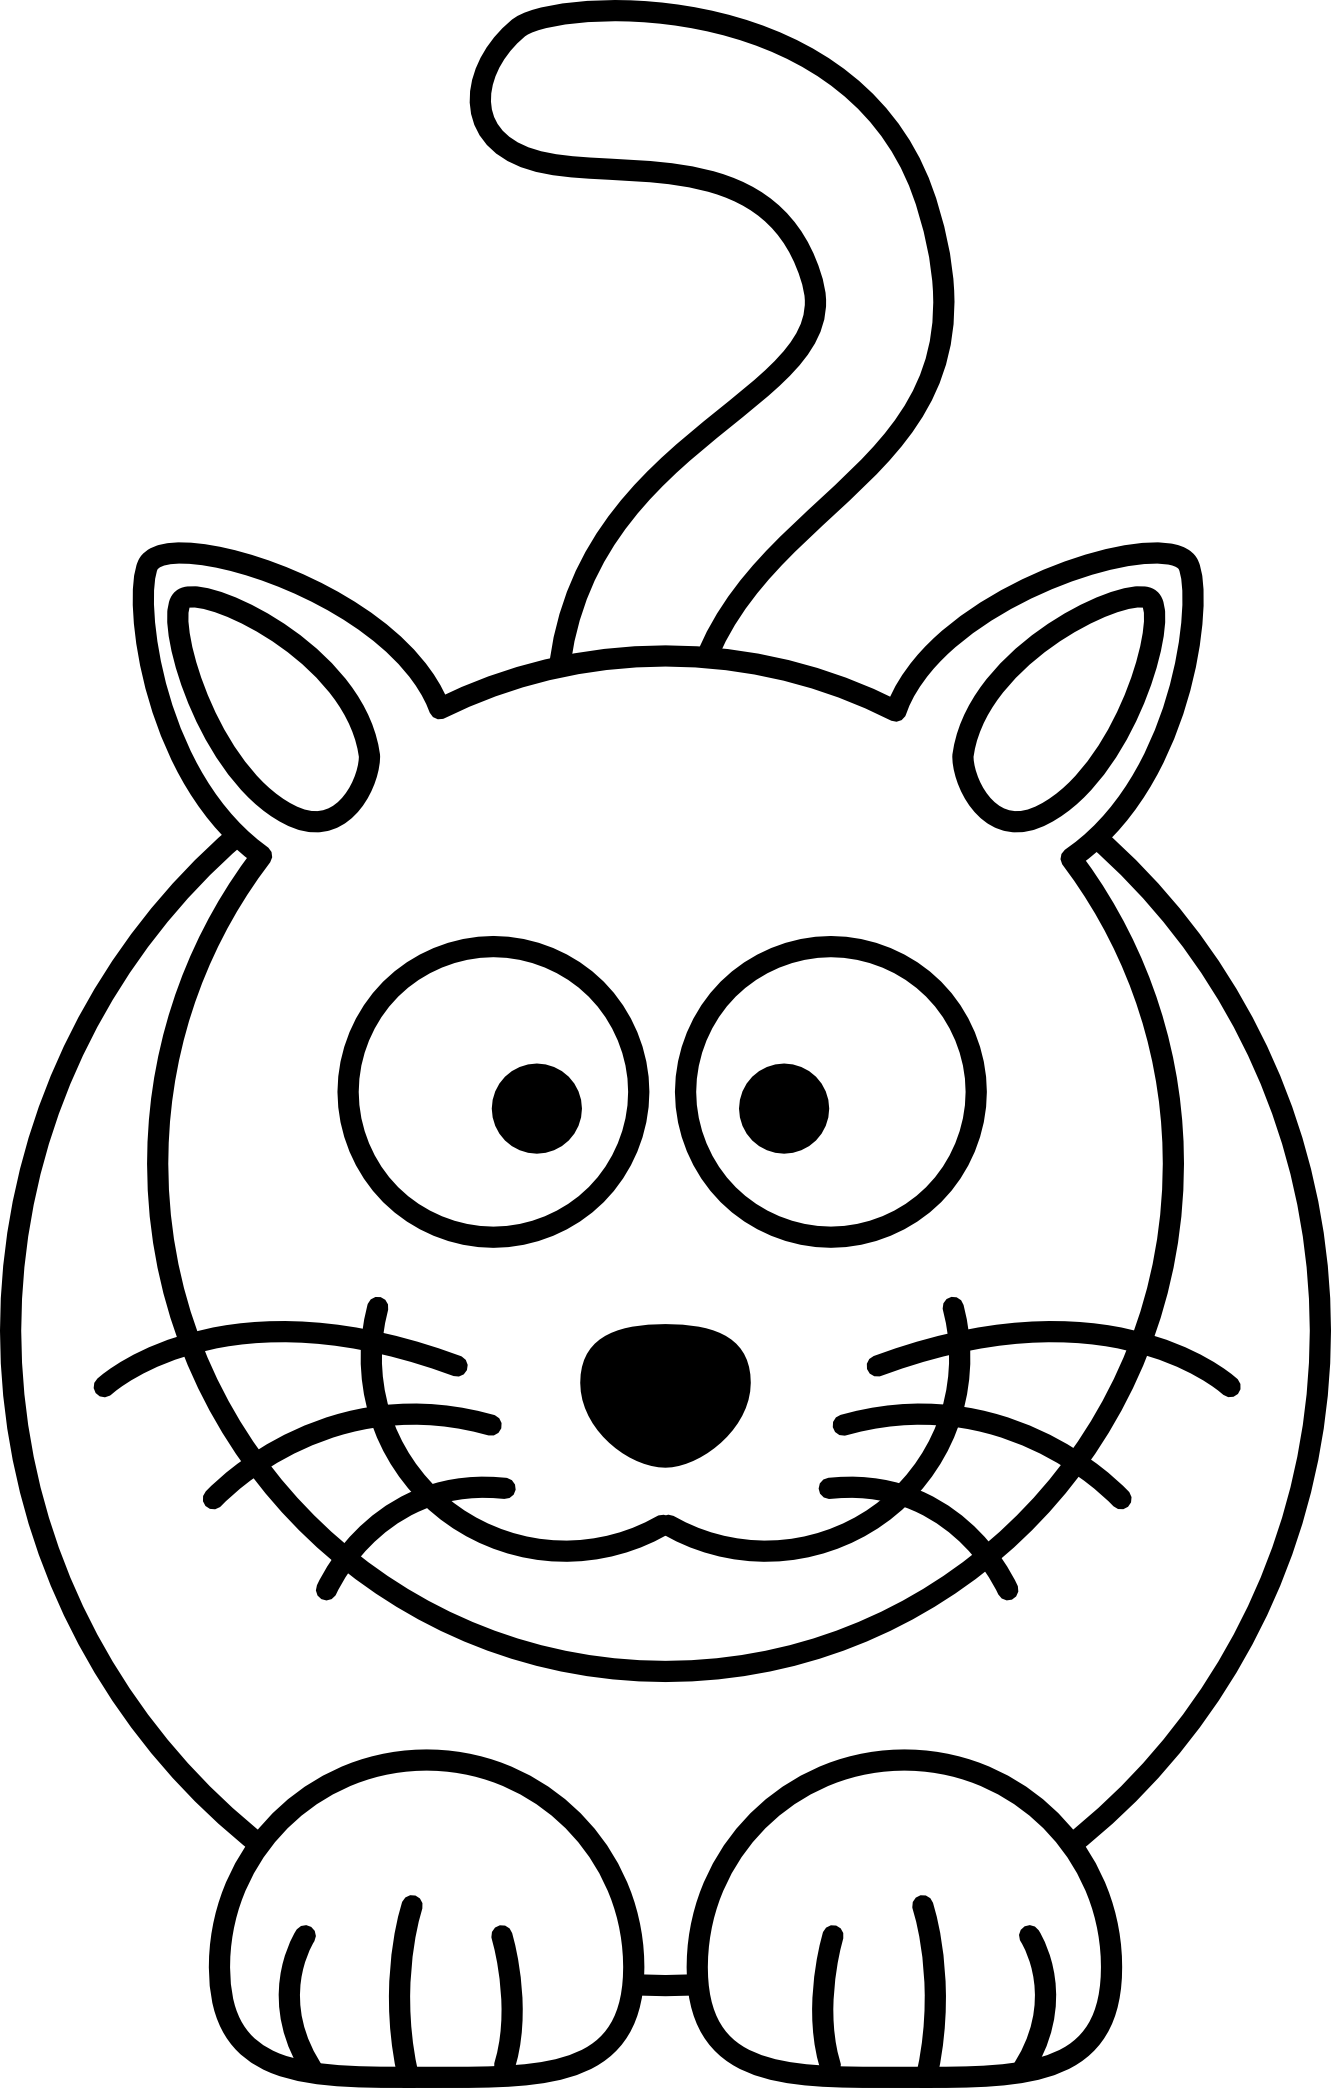 coloring clipart for kids lemmling cartoon cat black white line art coloring book kids clipart for coloring